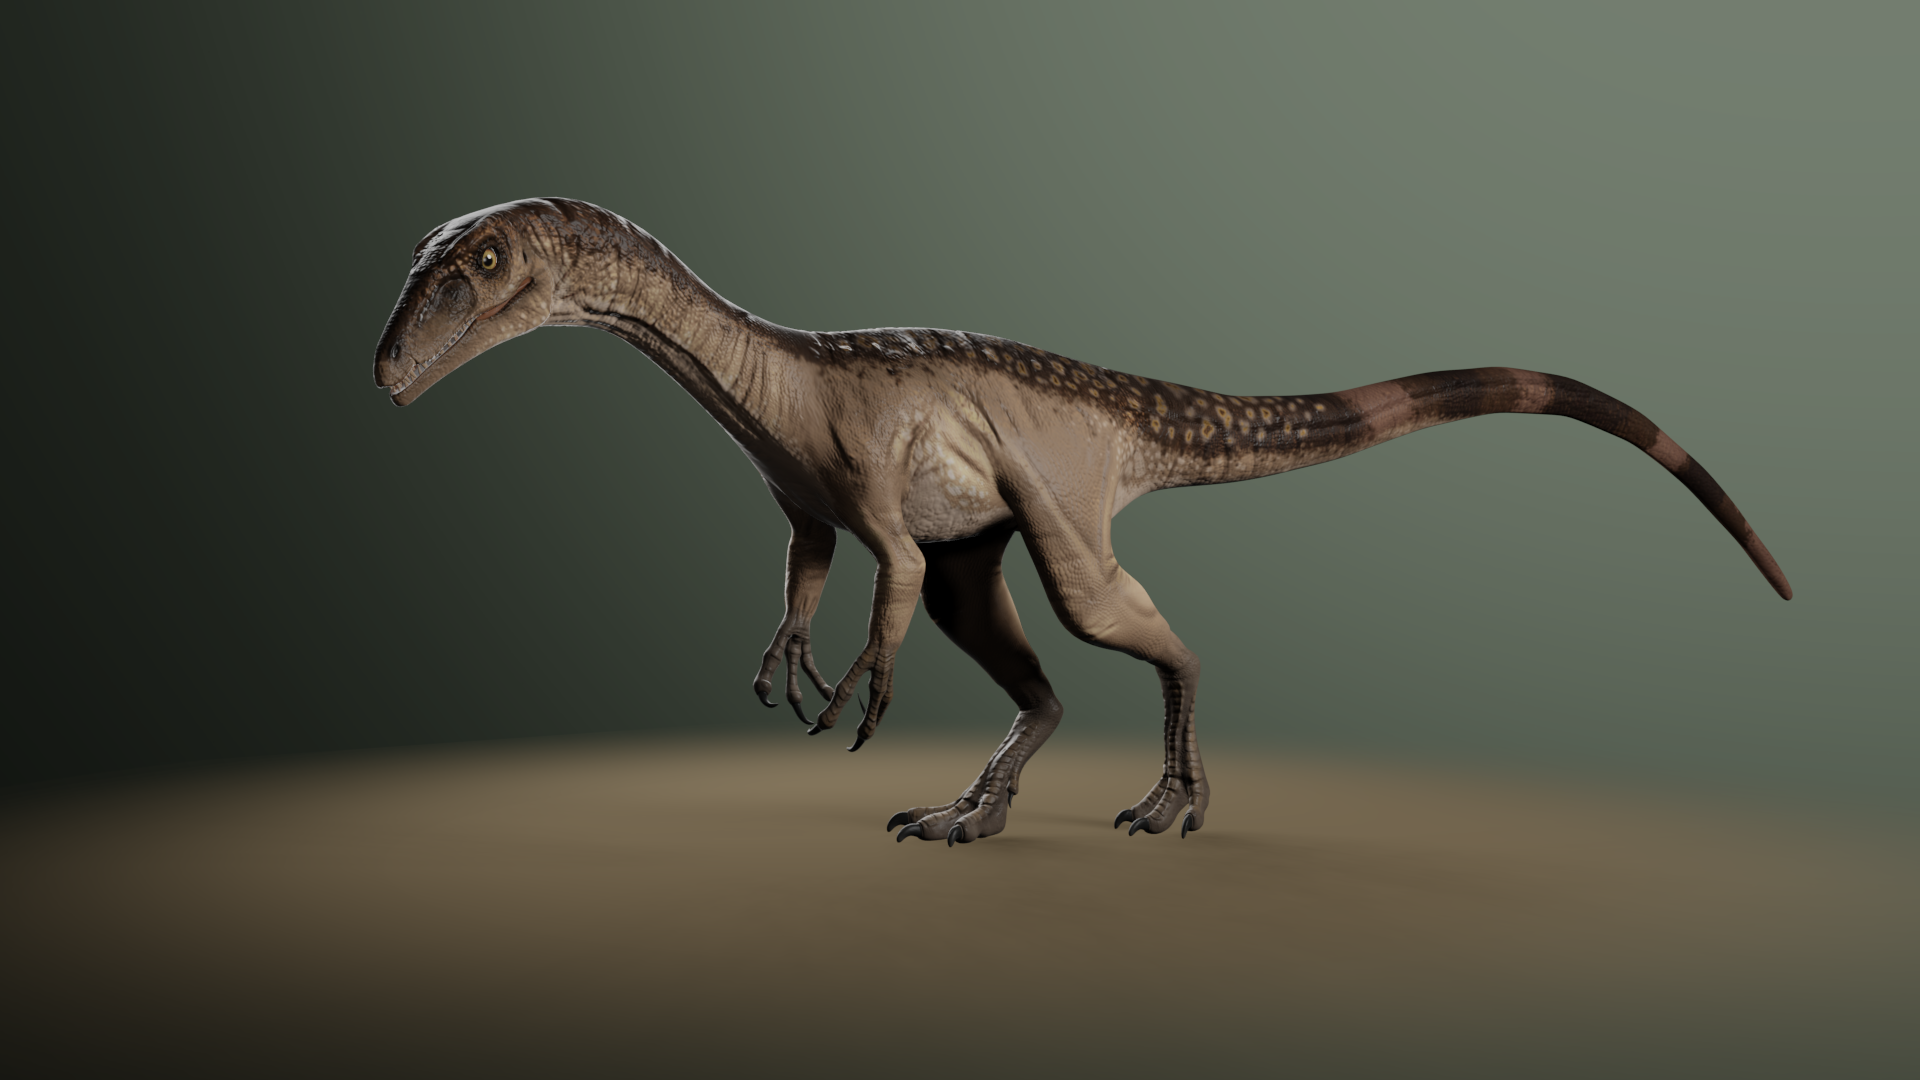 Tawa hallae, a dinosaur from the Triassic period.